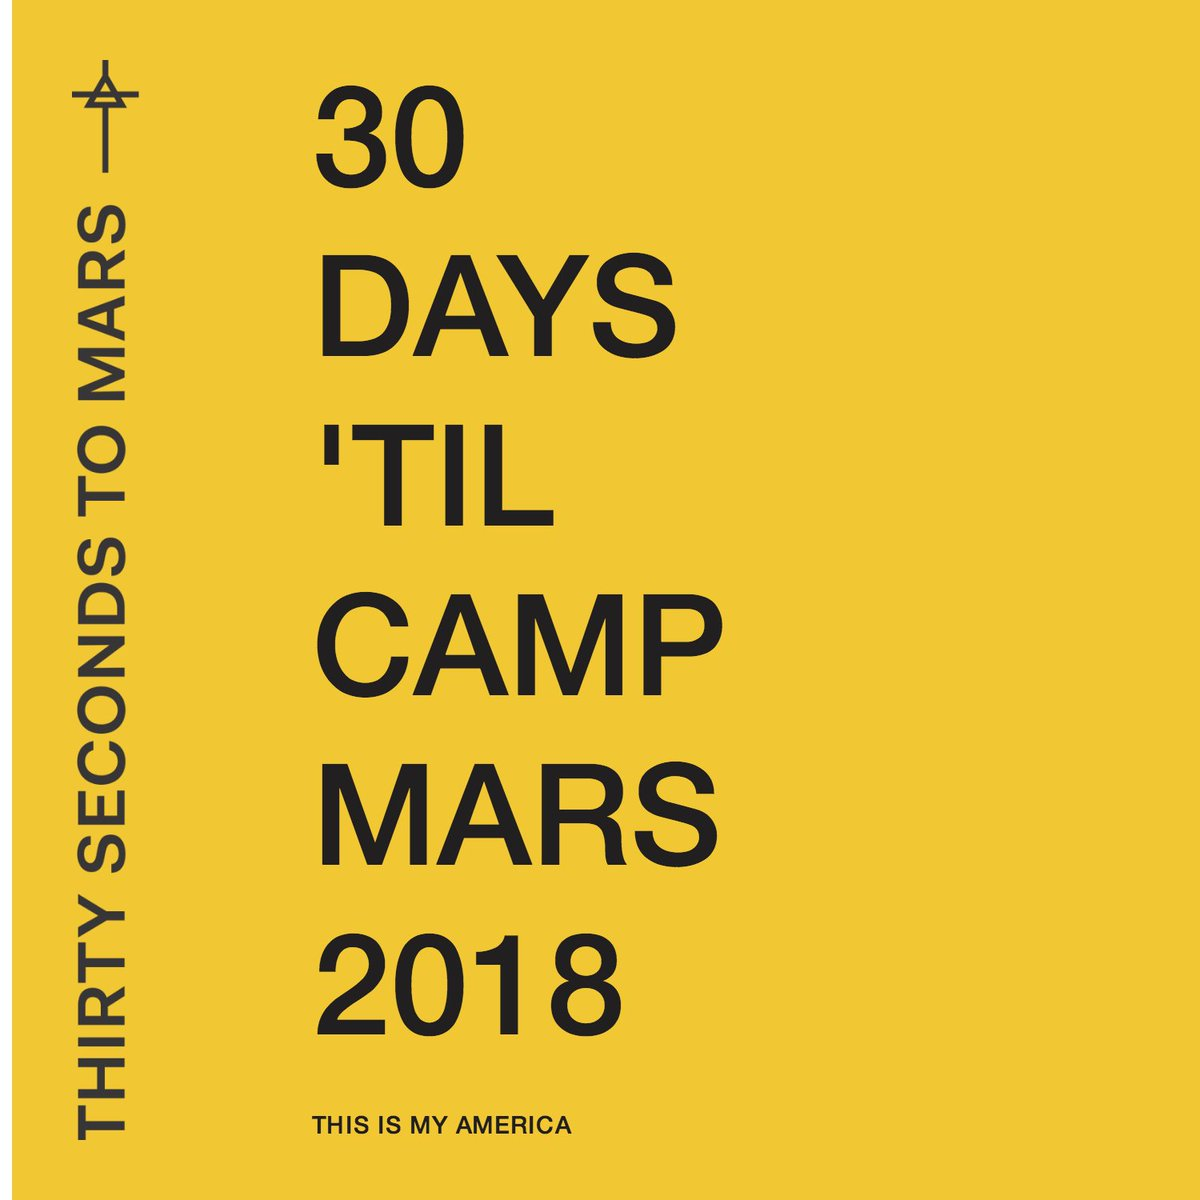 Hope to see you then Xo  https://t.co/uhdPT2dSE0 #CampMars https://t.co/tT9u7BMliV